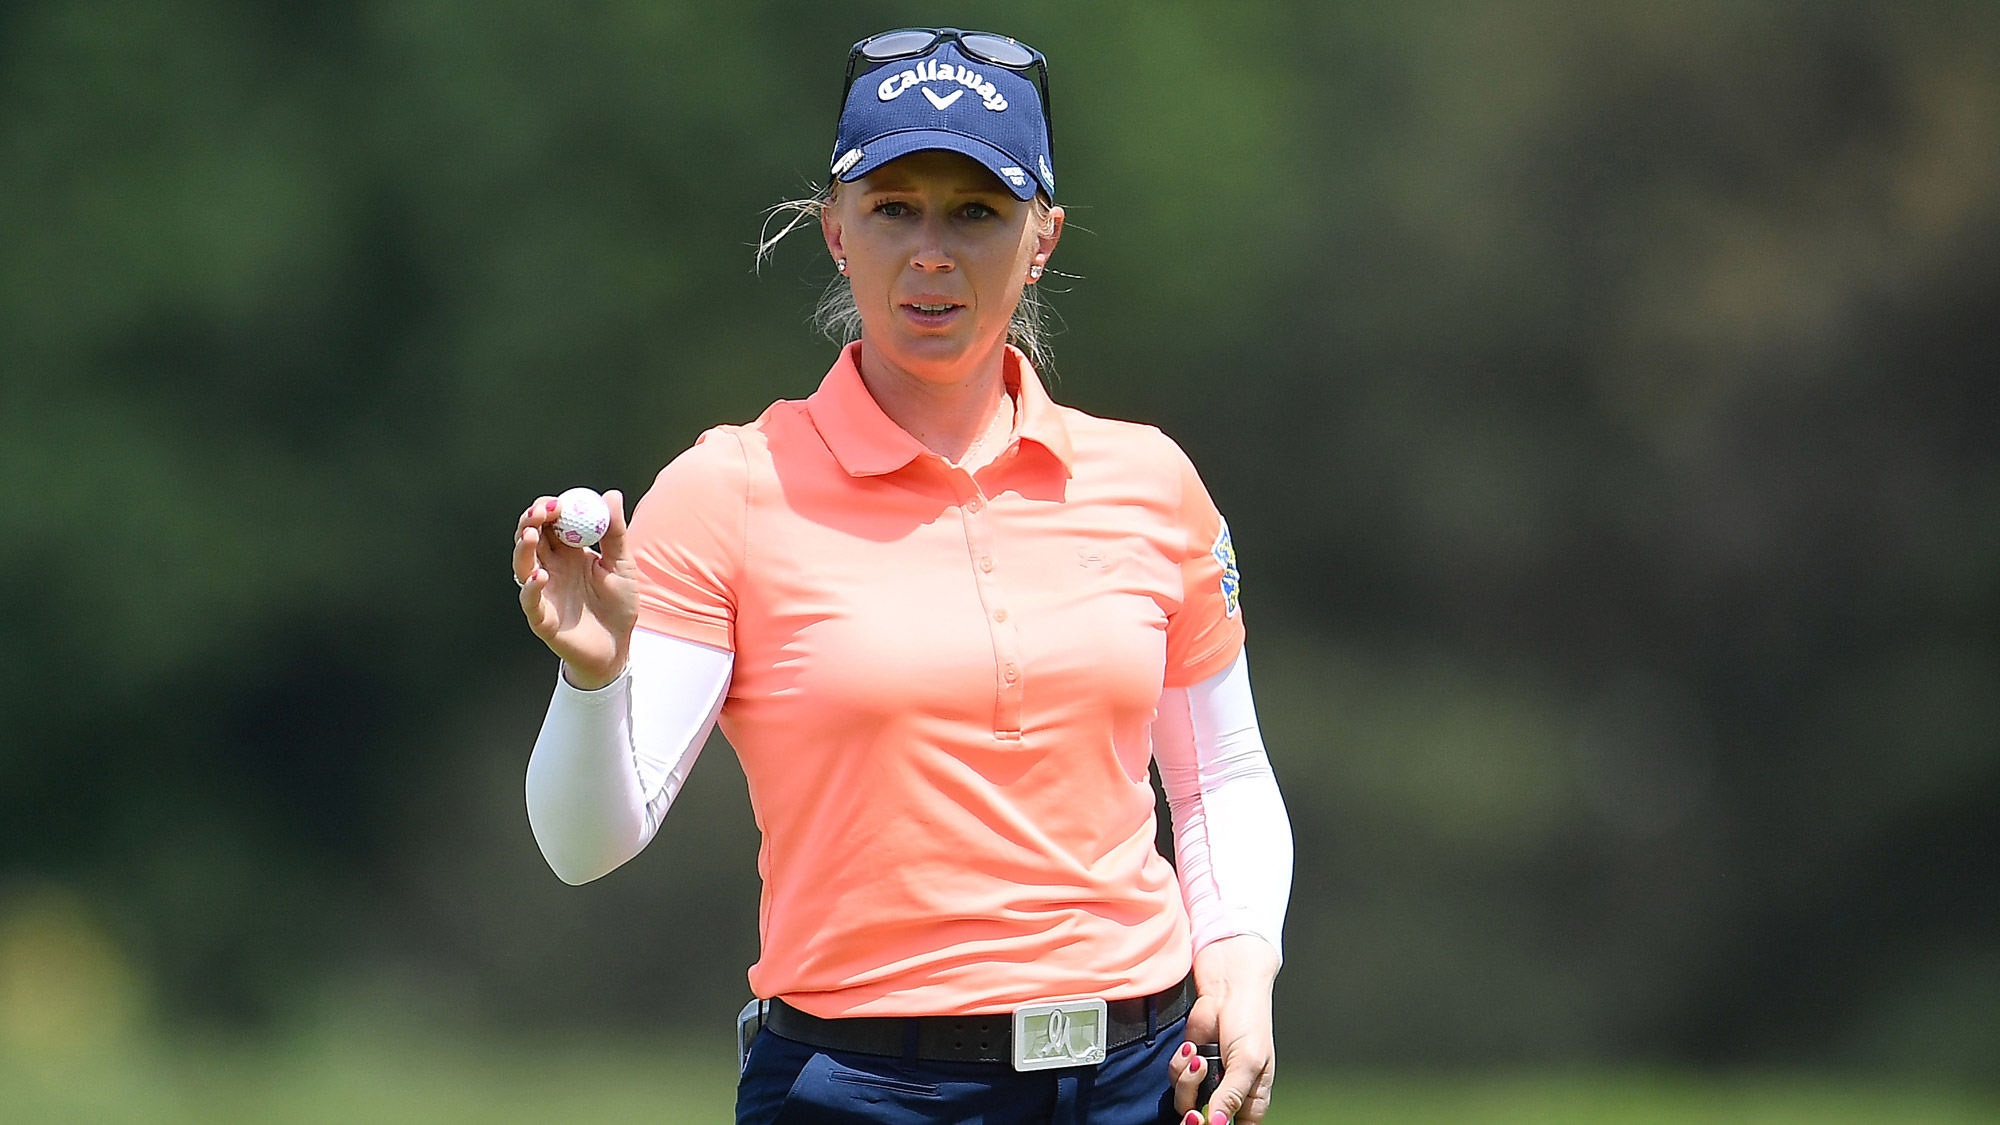 Morgan Pressel Acknowledges the Crowd at Meijer LPGA Classic